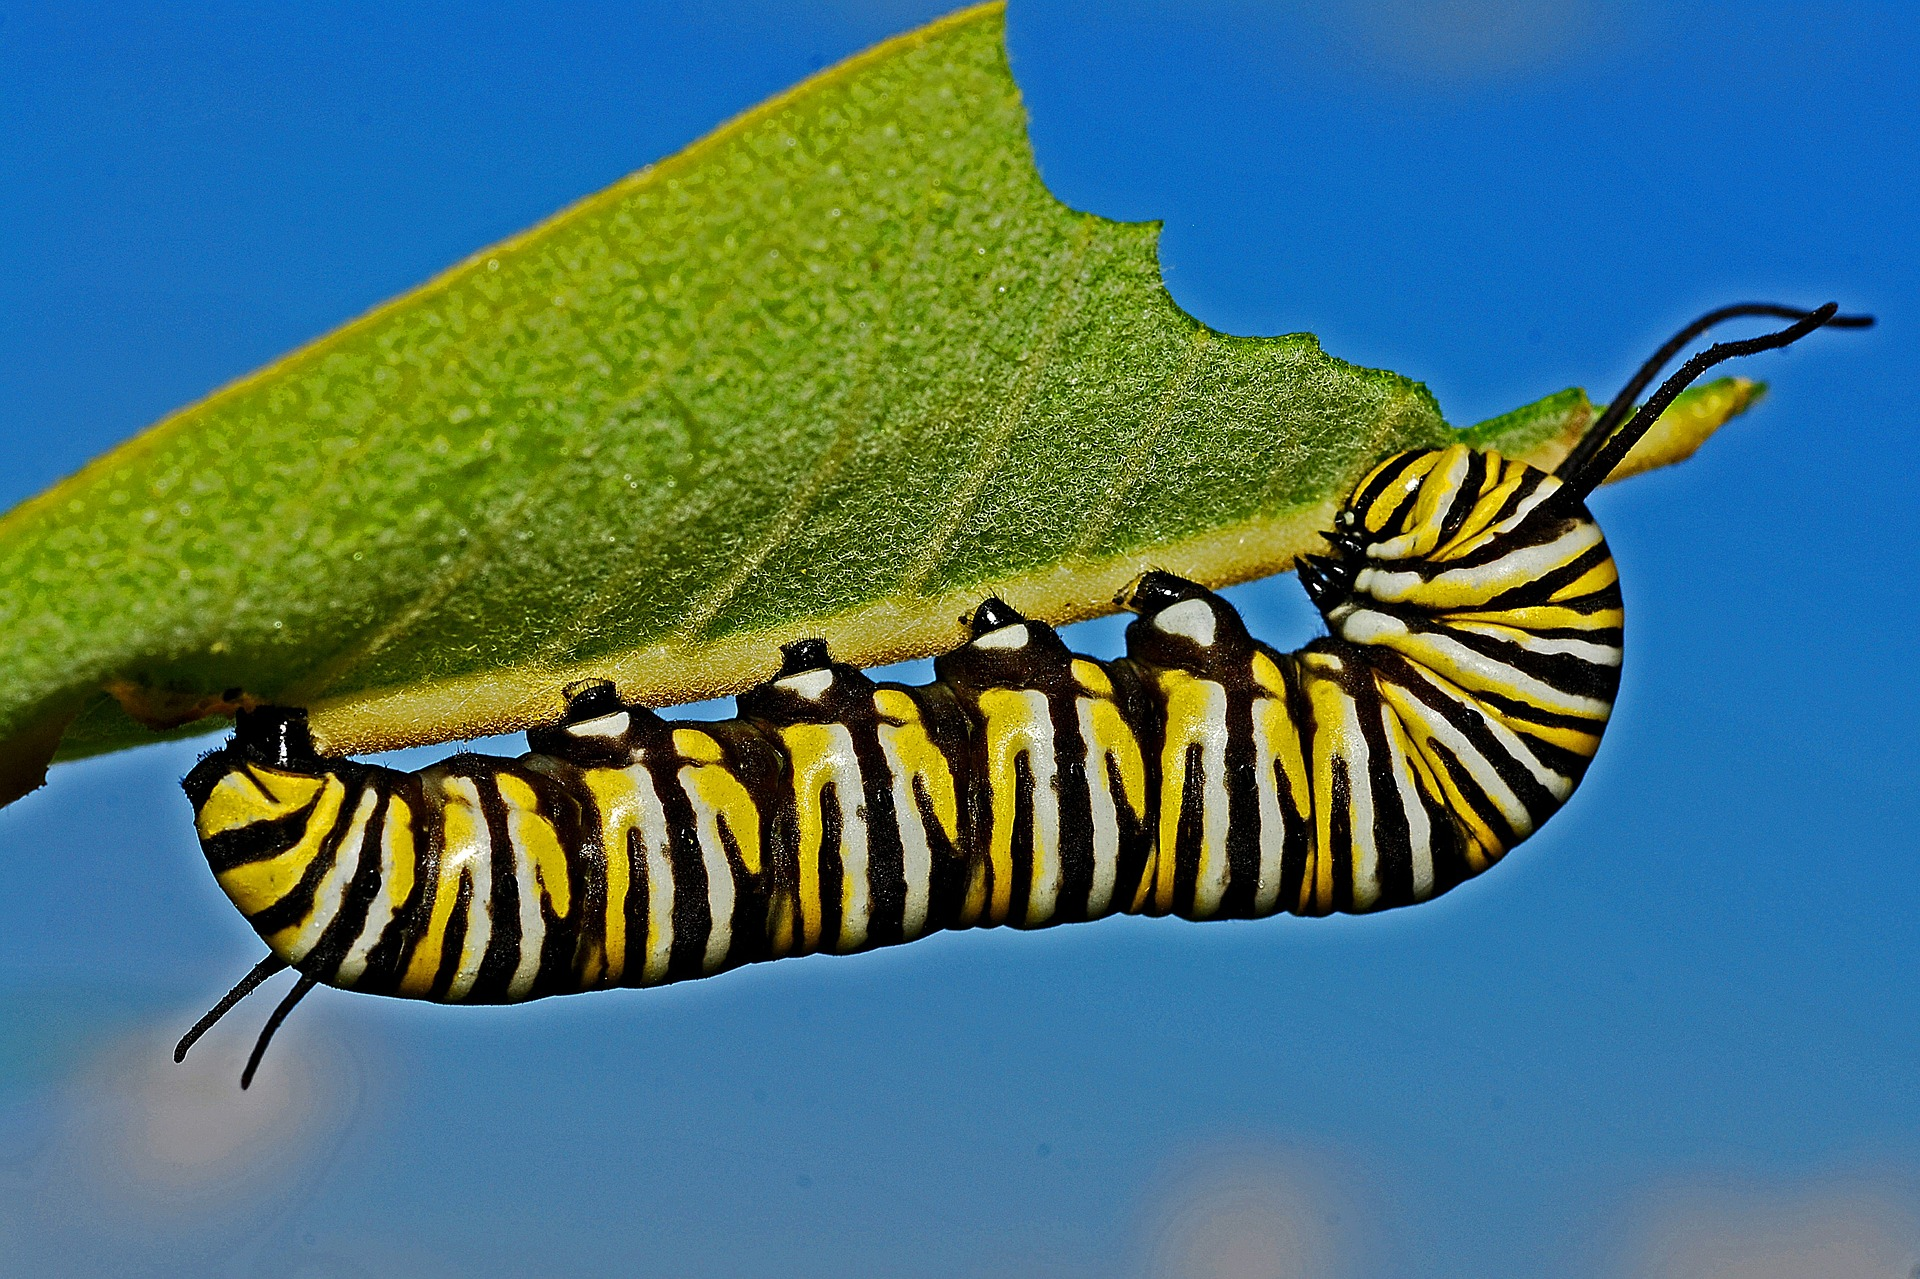 Caterpillars Are Baby Butterflies - Rural Dreams